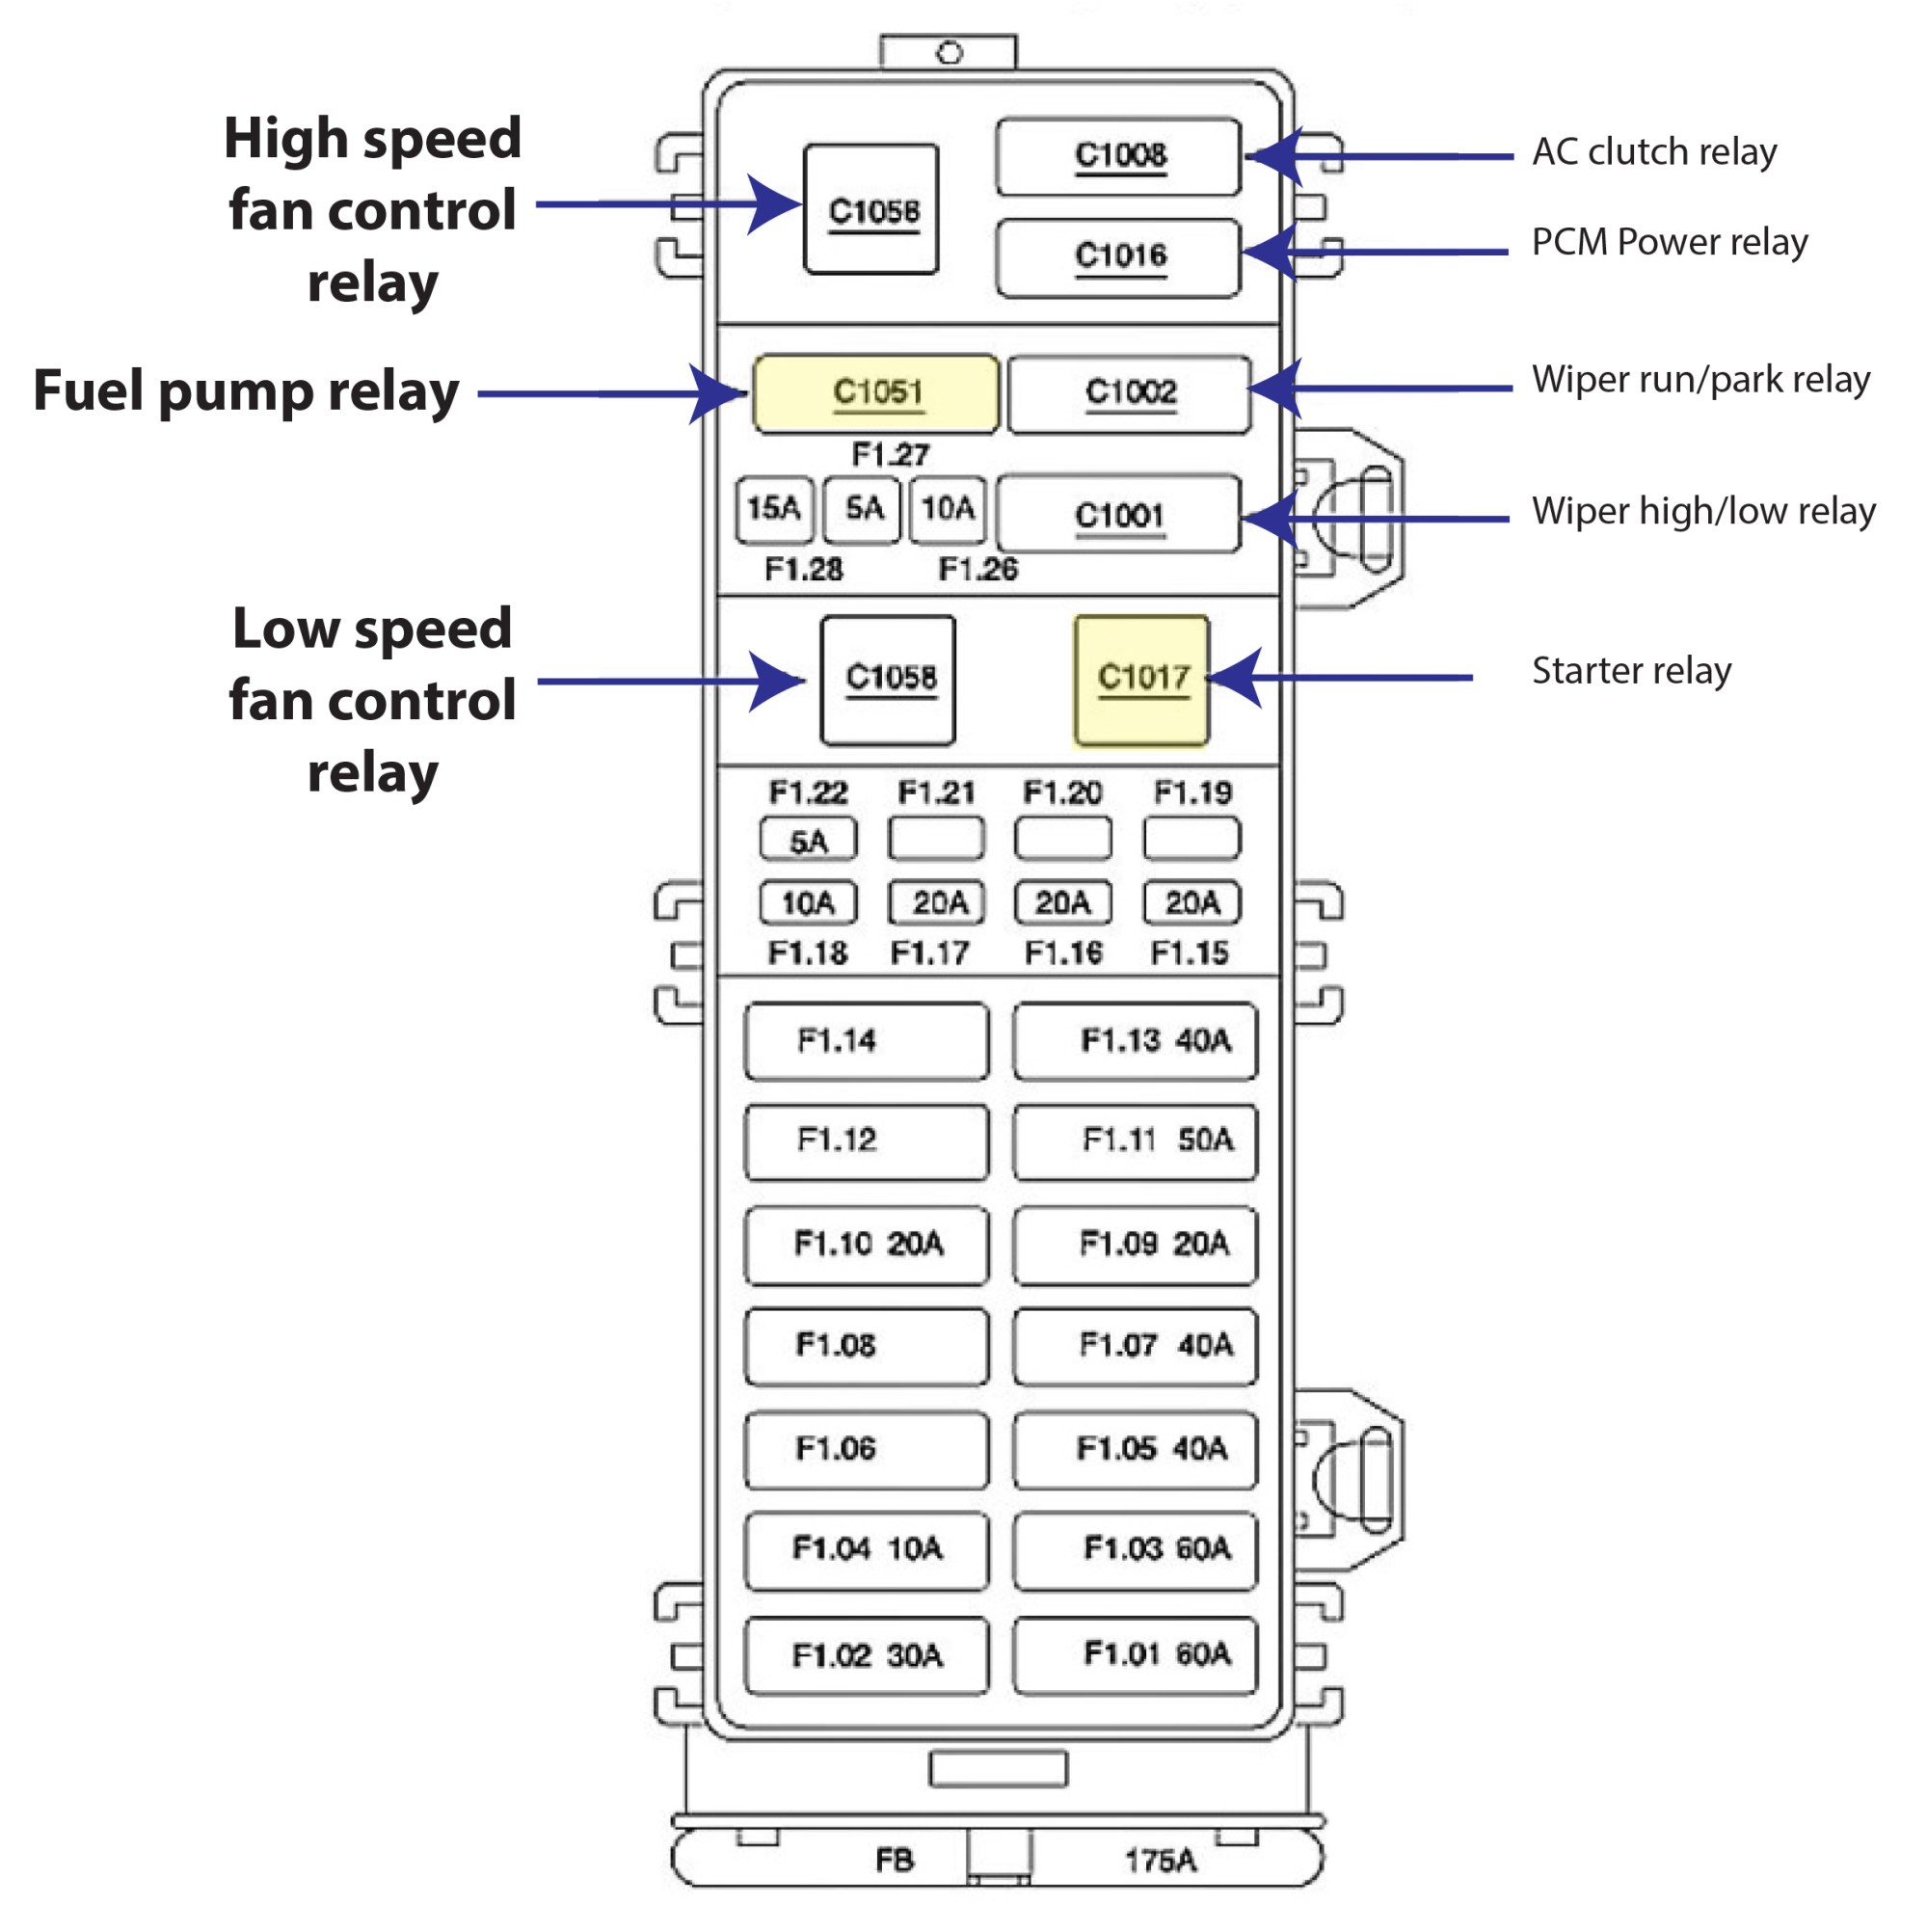 hight resolution of 2006 taurus fuse box wiring diagram schematic 2006 ford taurus fuse diagrams ricks free auto repair